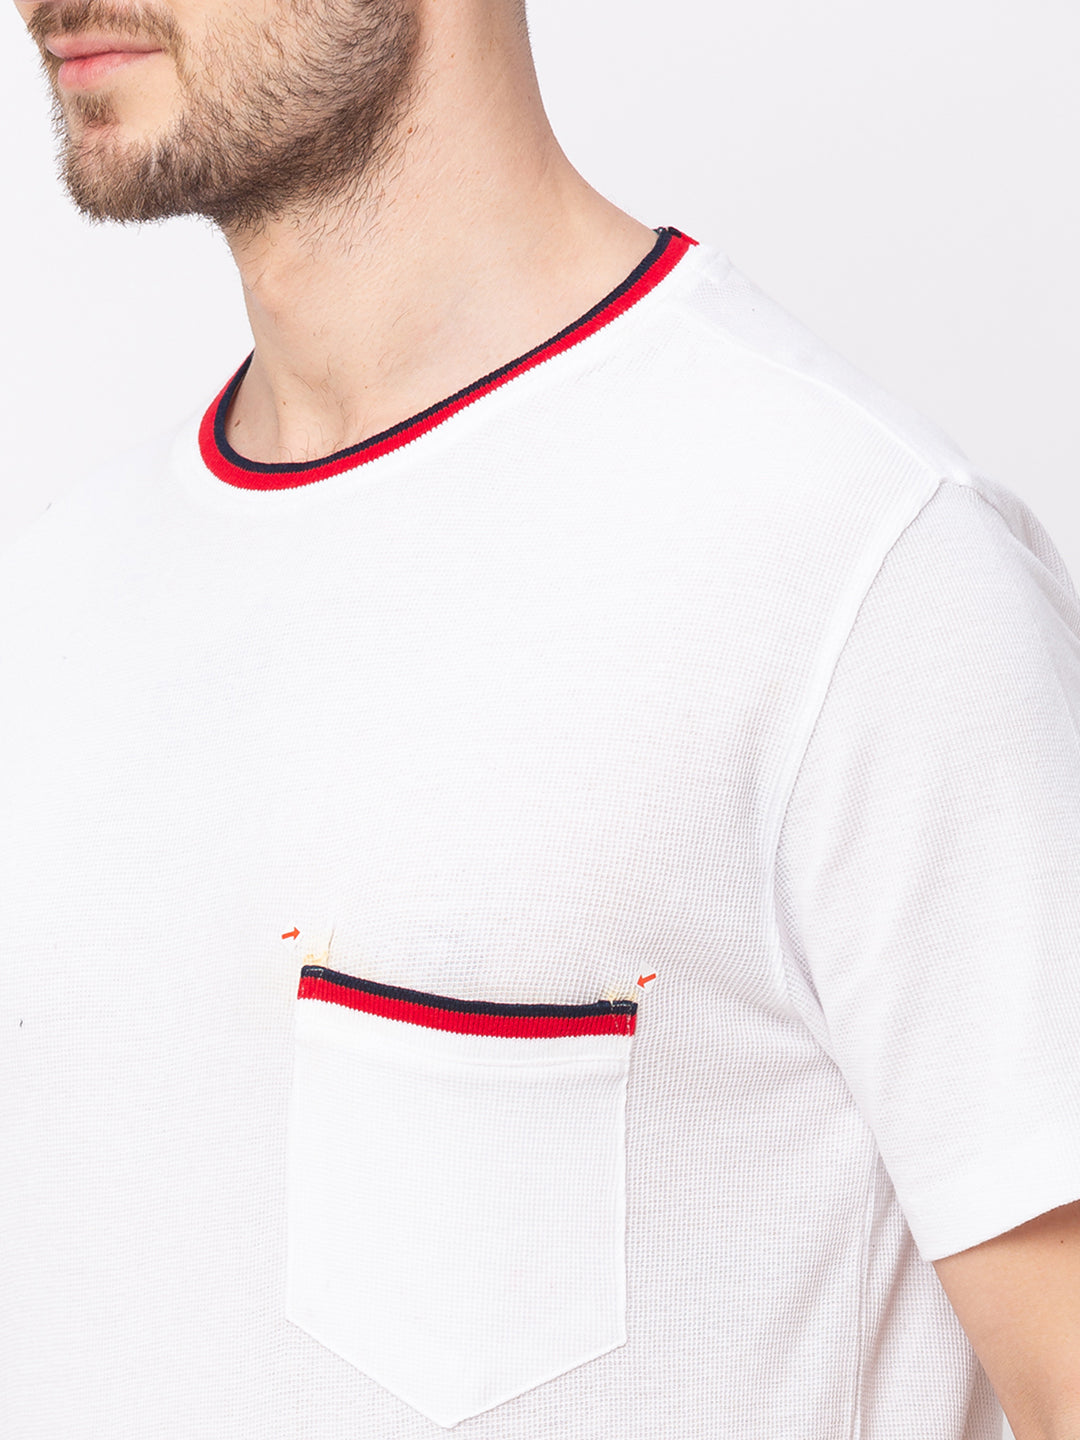 Globus White Solid T-Shirt-4